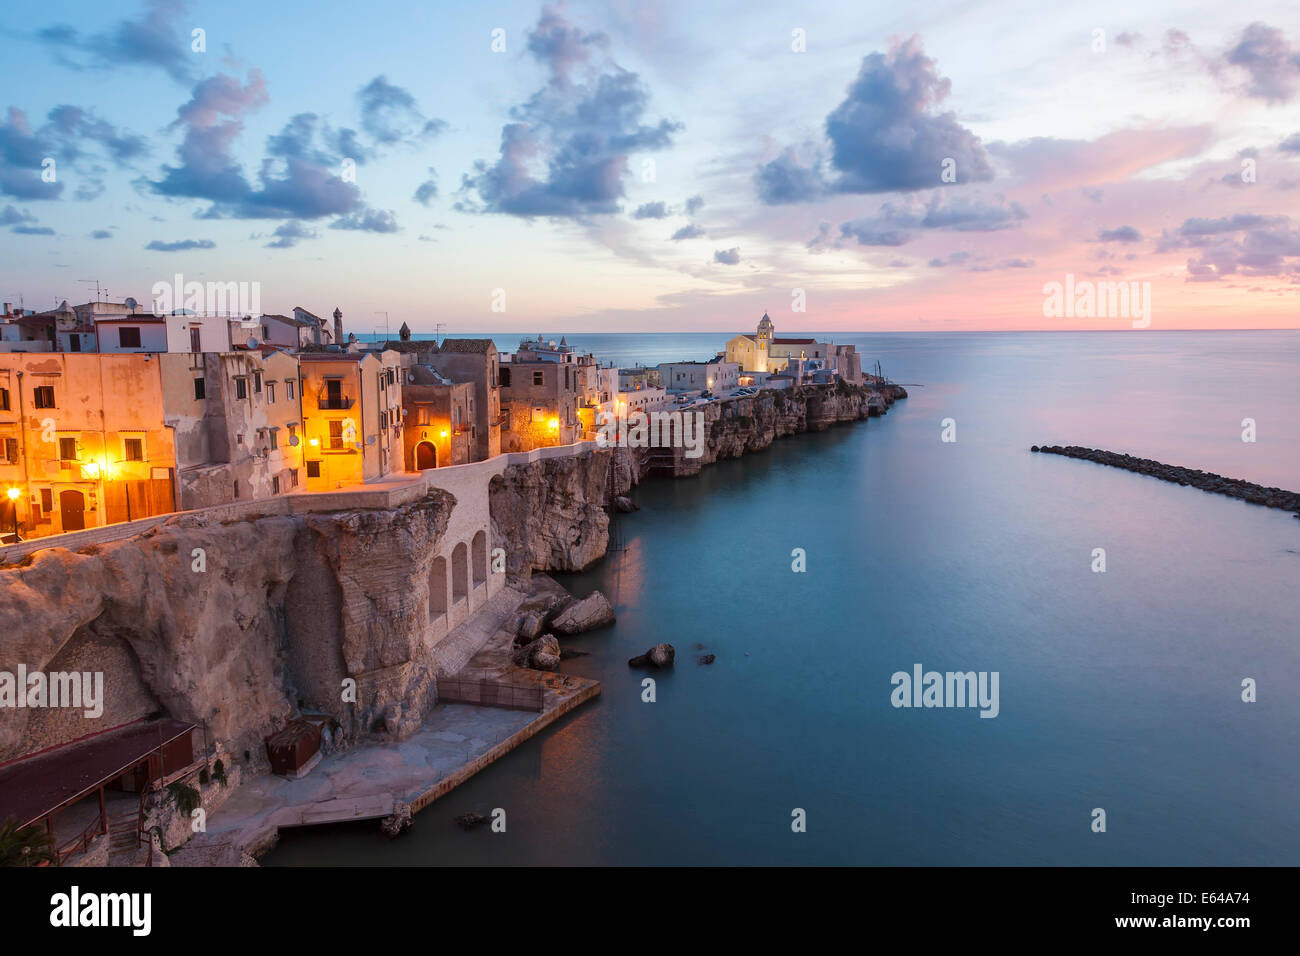 La ville avec l'église San Francesco, Vieste, Gargano, district de Foggia, Pouilles, Pouilles, Italie Photo Stock